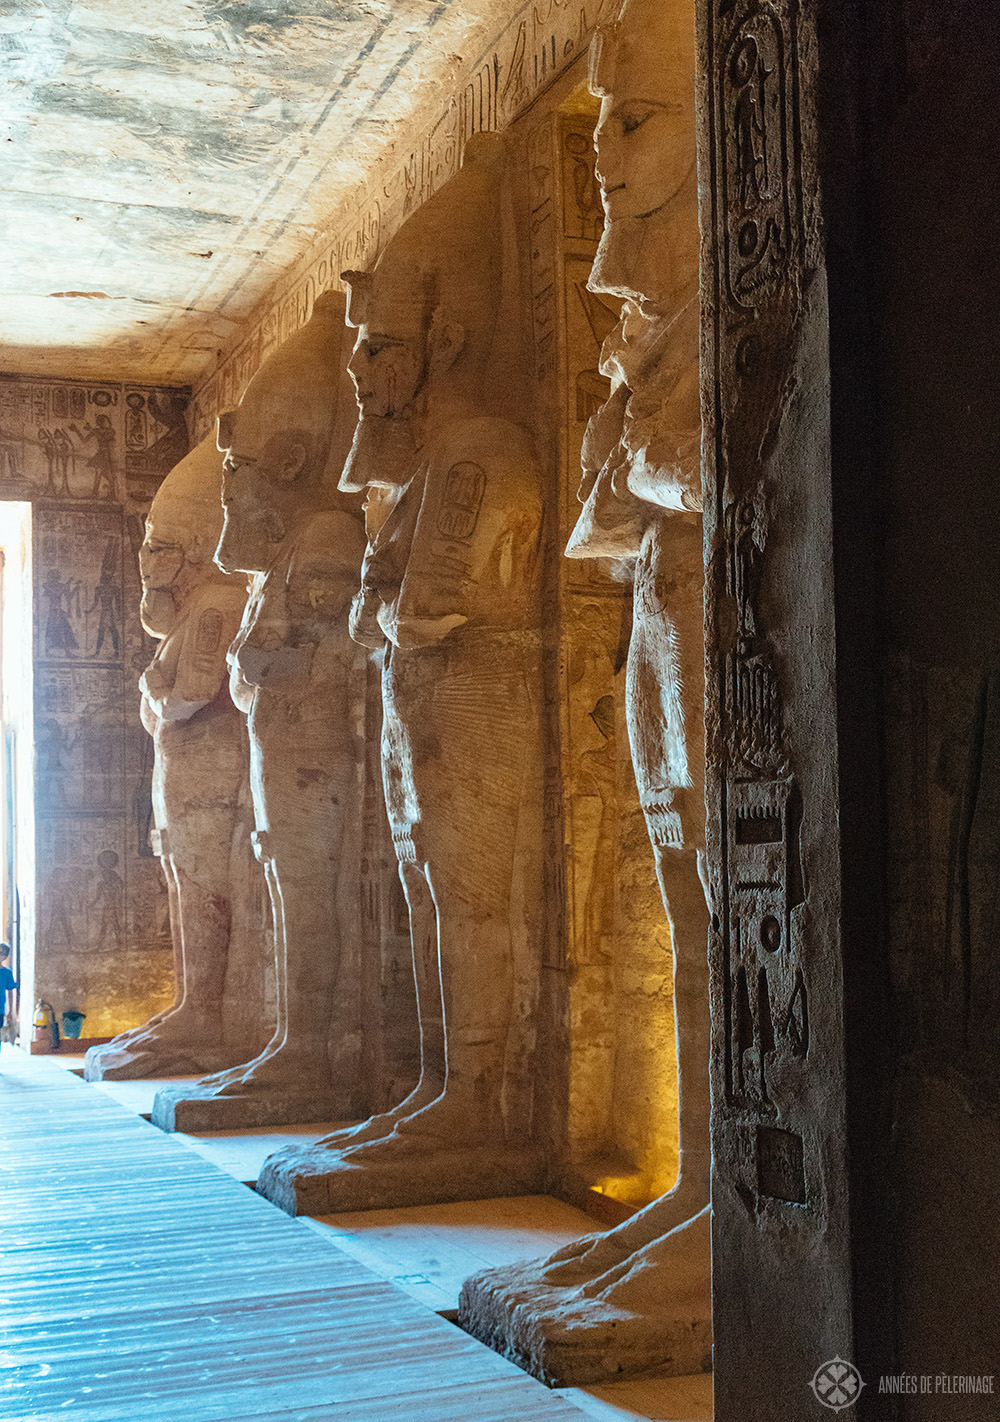 Collosal statues of Ramses II inside the great temple in Abu Simbel, Egypt